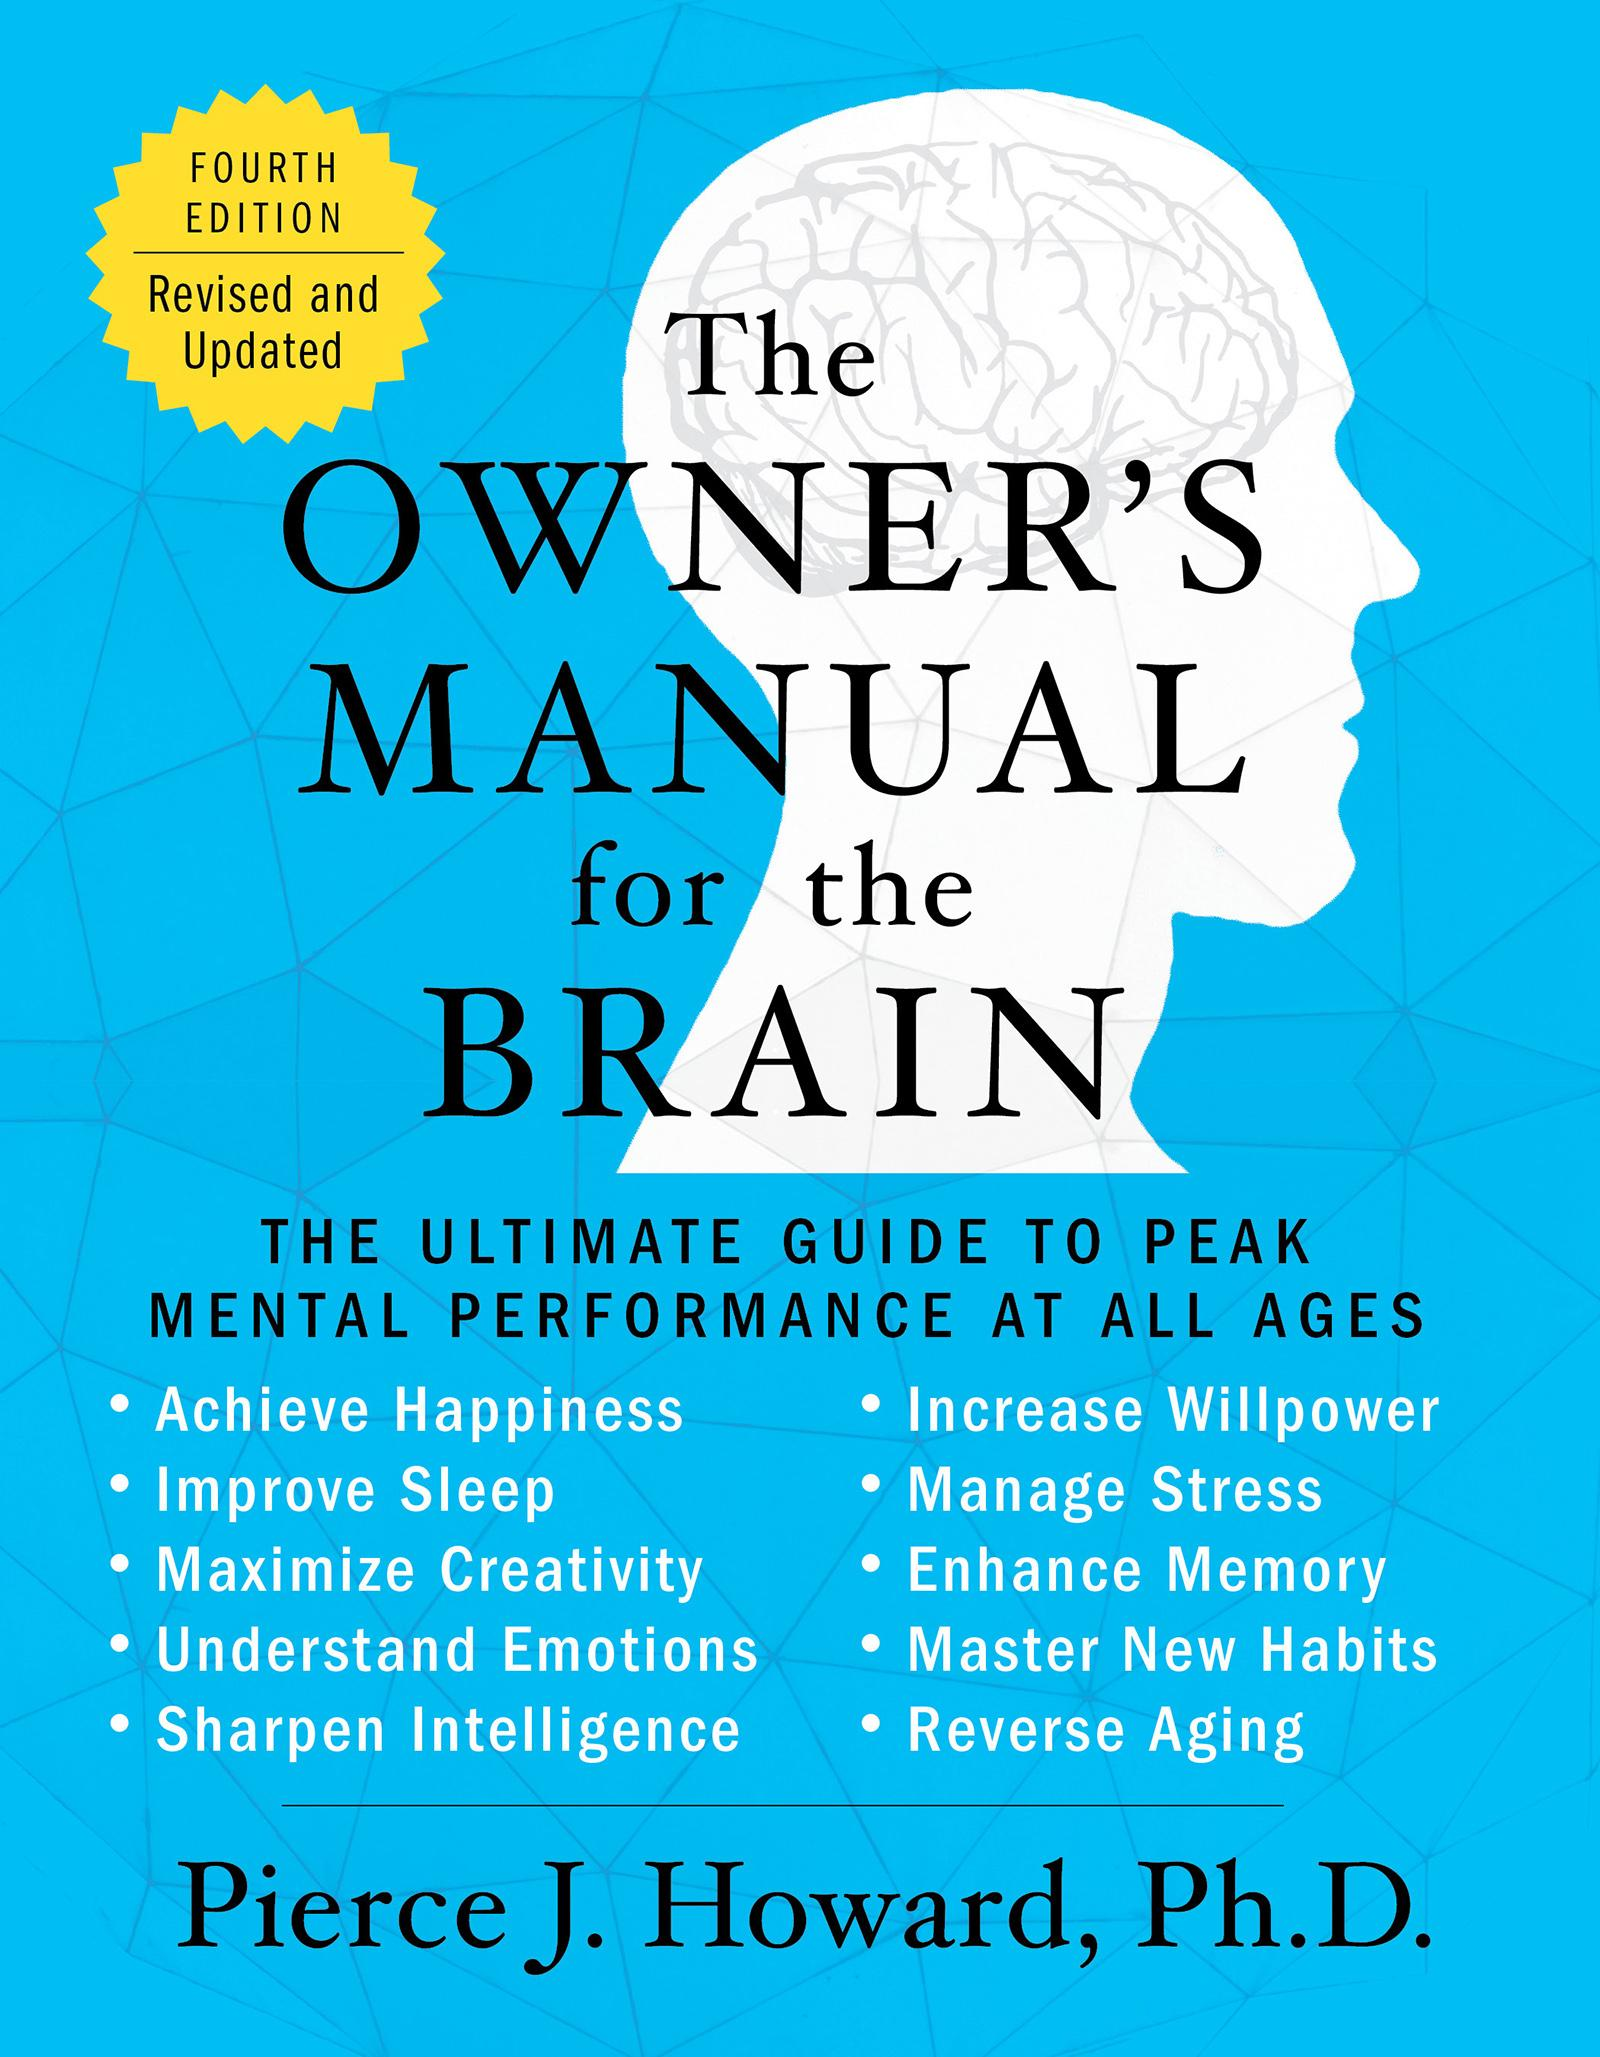 The Owner's Manual for the Brain (4th Edition) by Pierce Howard, ISBN: 9780062227362